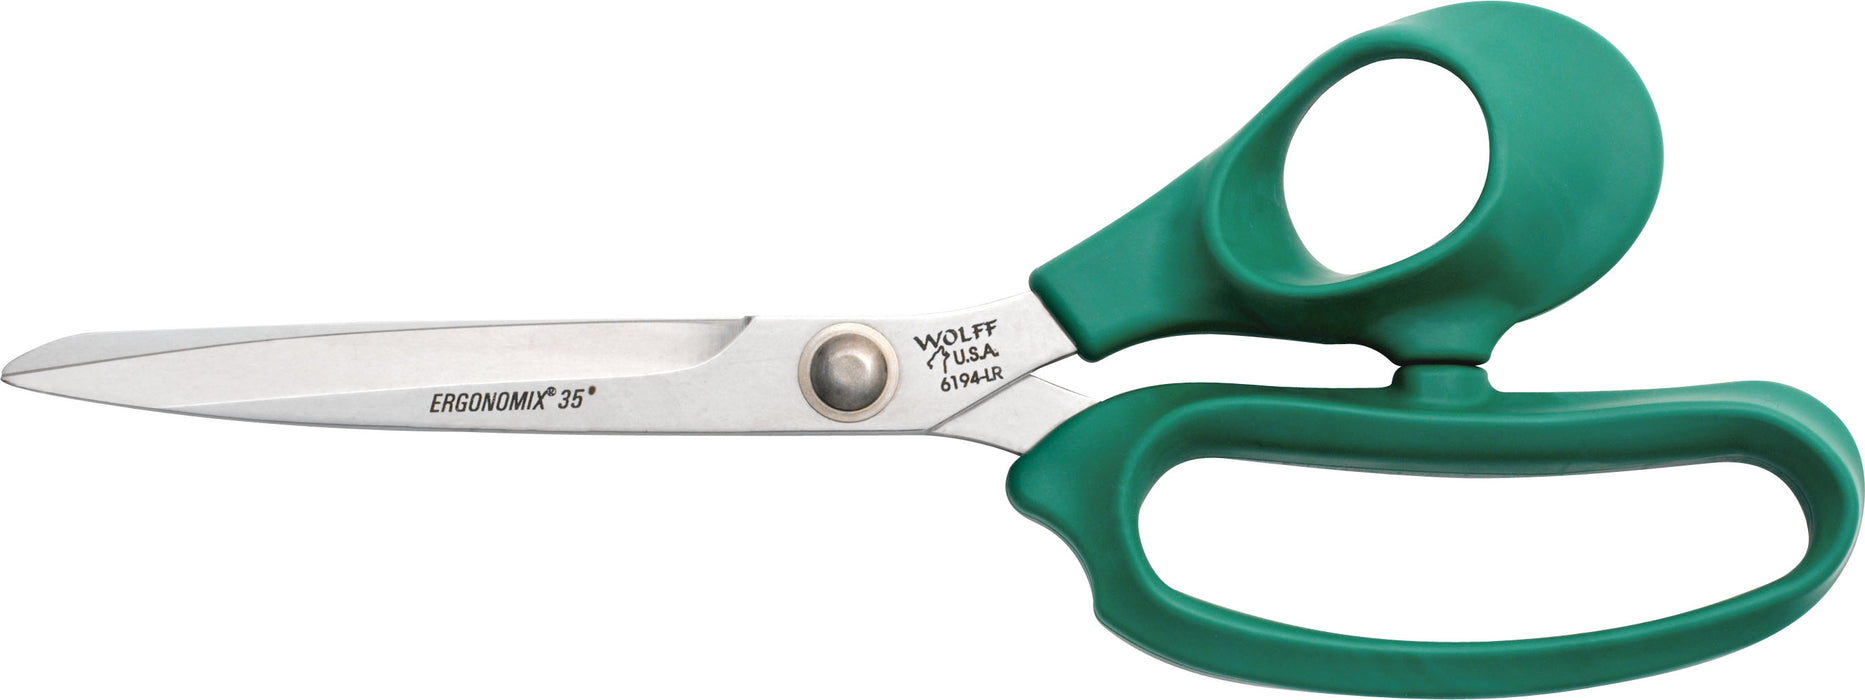 "Wolff® 6194-LR 9 5/8"" Egonomix® Poultry Scissors - 6000 Series Stainless Steel Shears"